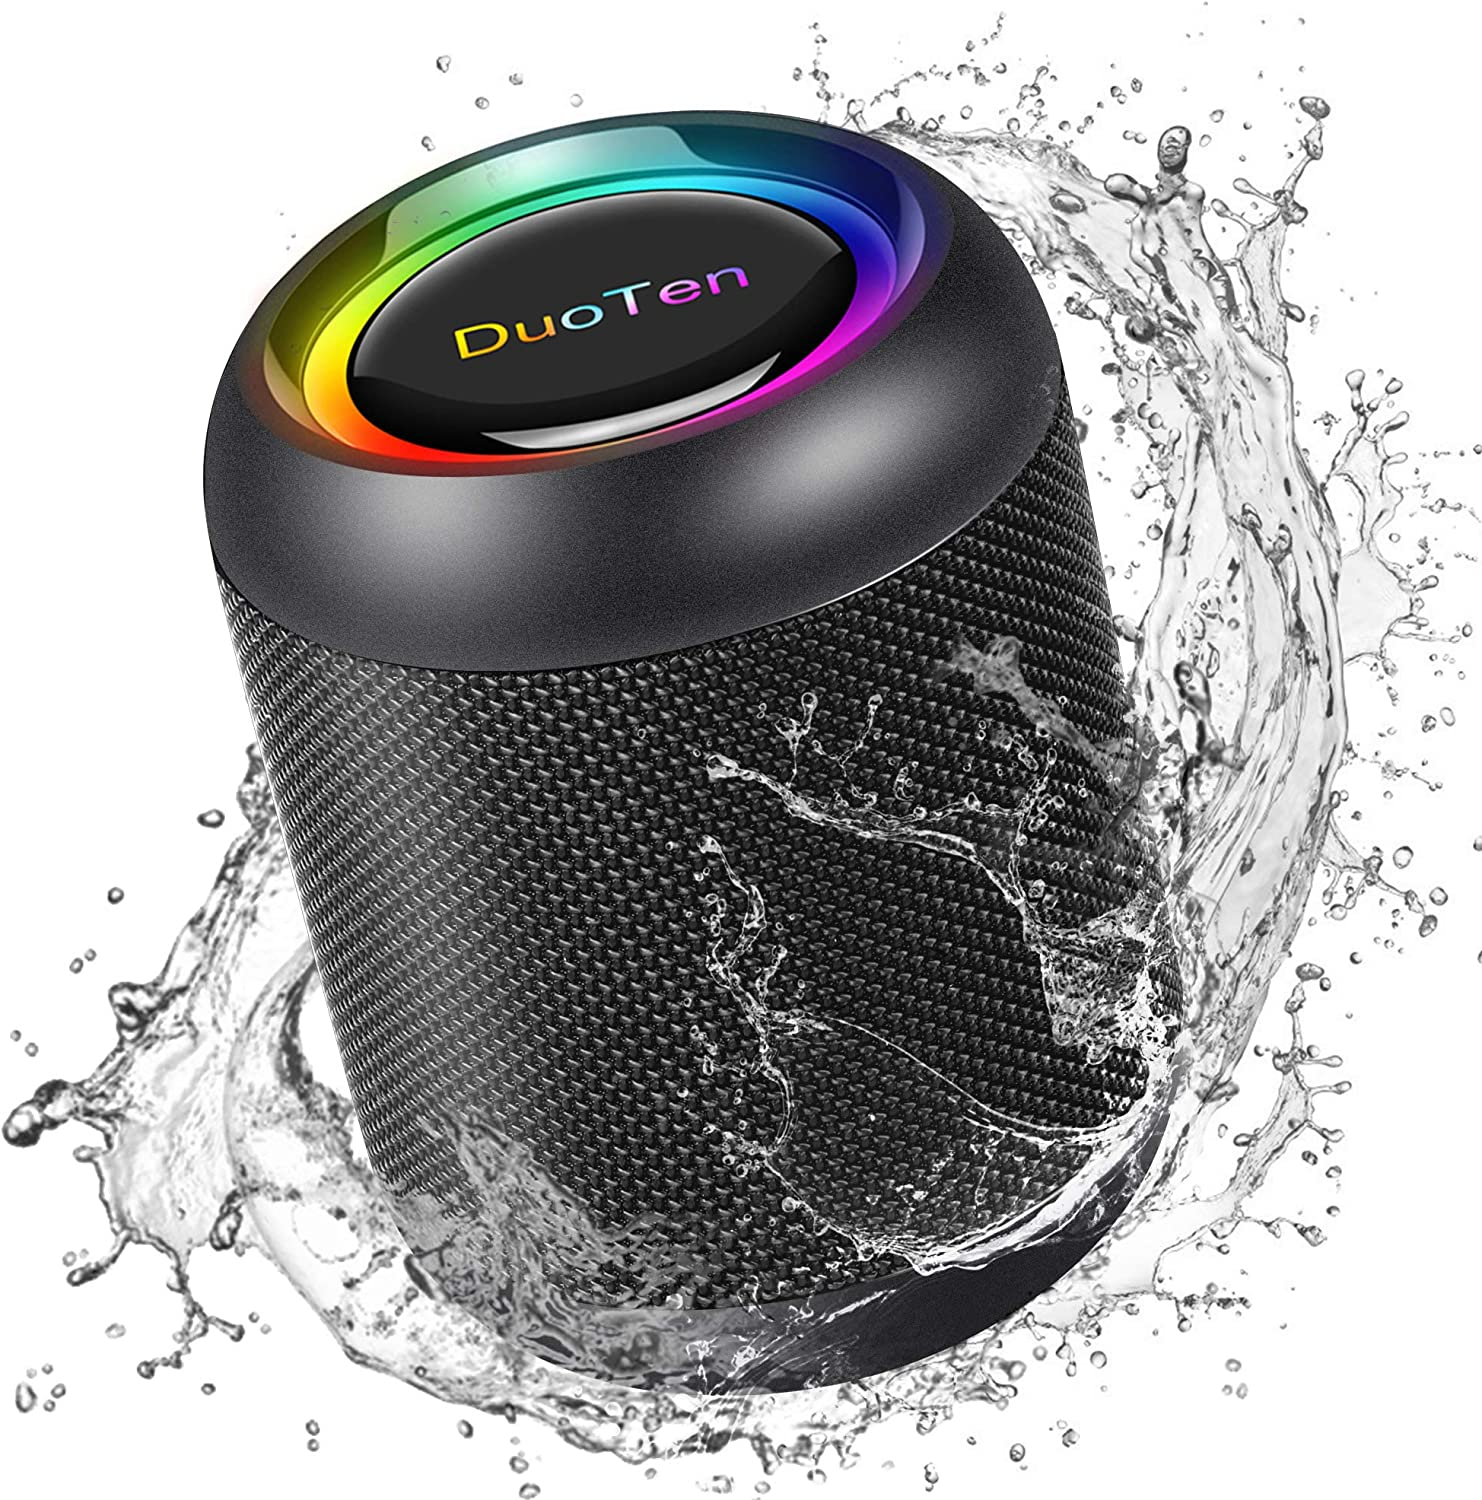 IPX7 Waterproof Speaker, DuoTen Portable Bluetooth 5.0 Wireless Speaker with RGB Light Show 360° Surround Sound TWS with Mic AUX Micro SD 24 Hours Playtime for Travel, Home, Party, Shower & Outdoors